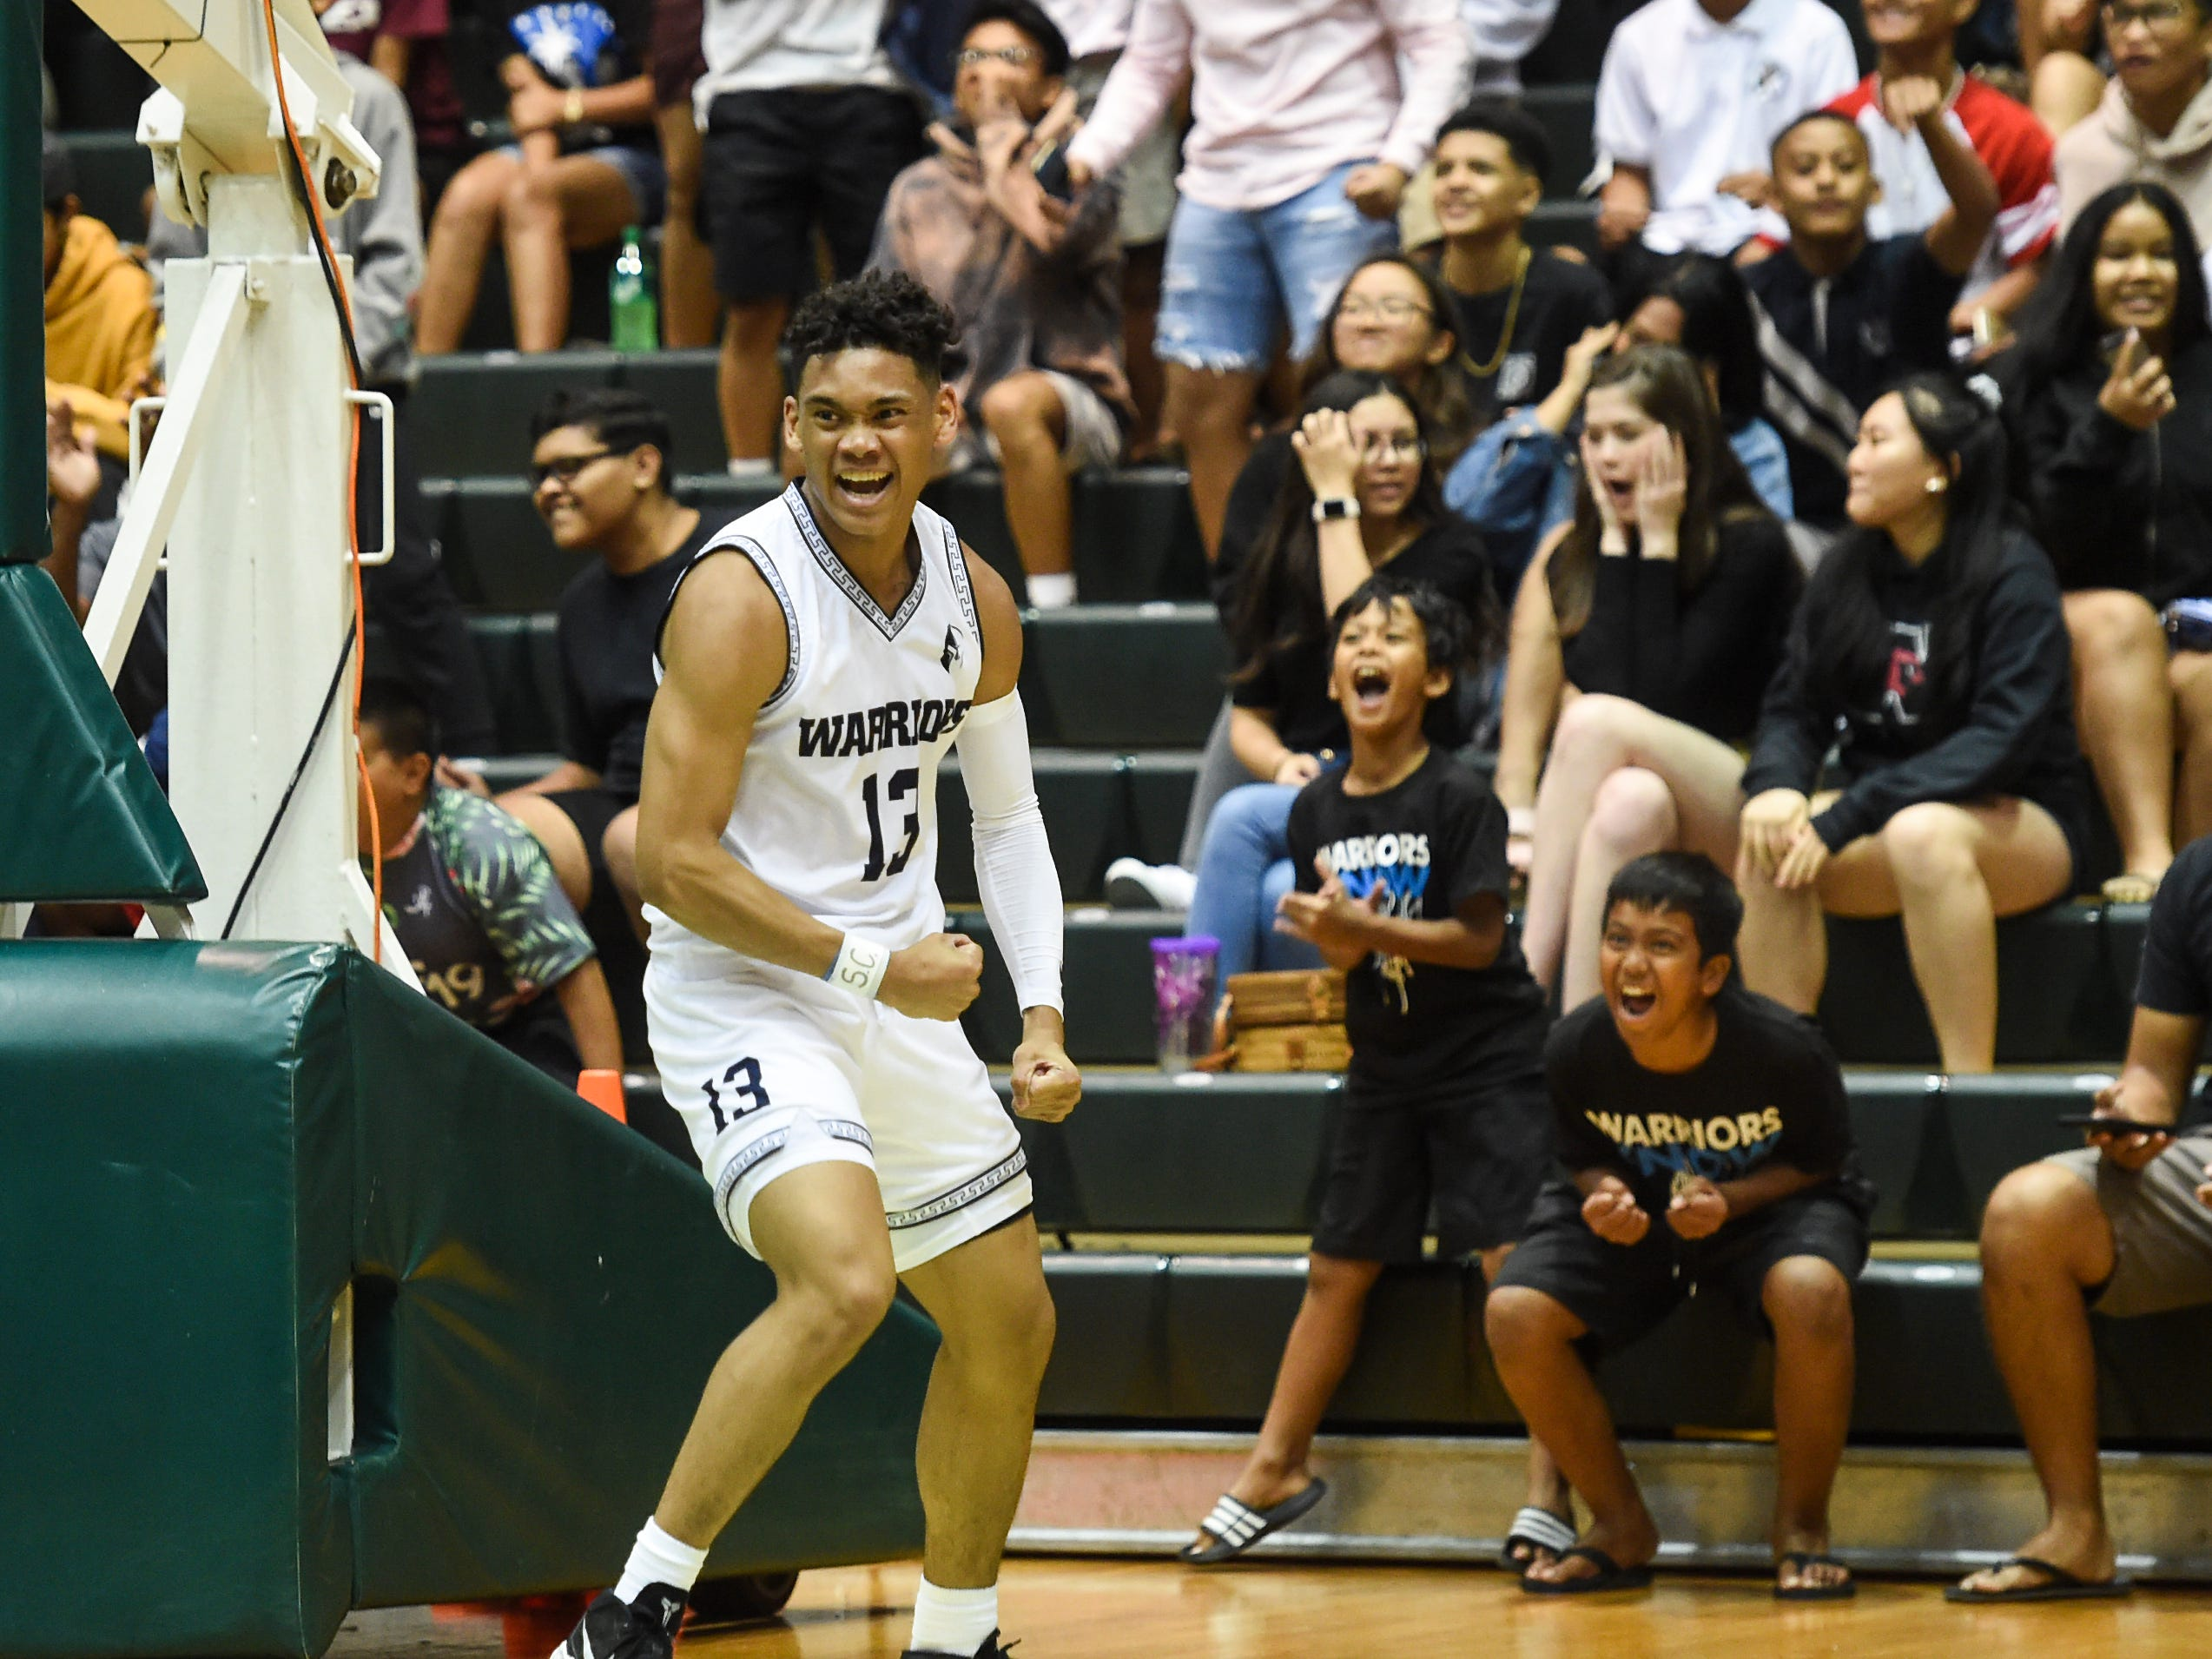 The St. Paul Warriors' Jahmar White (13) celebrates after a fast break bucket during the IIAAG Boys' Basketball Championship game against the Father Duenas Friars at the University of Guam Calvo Field House in Mangilao, March 15, 2019.